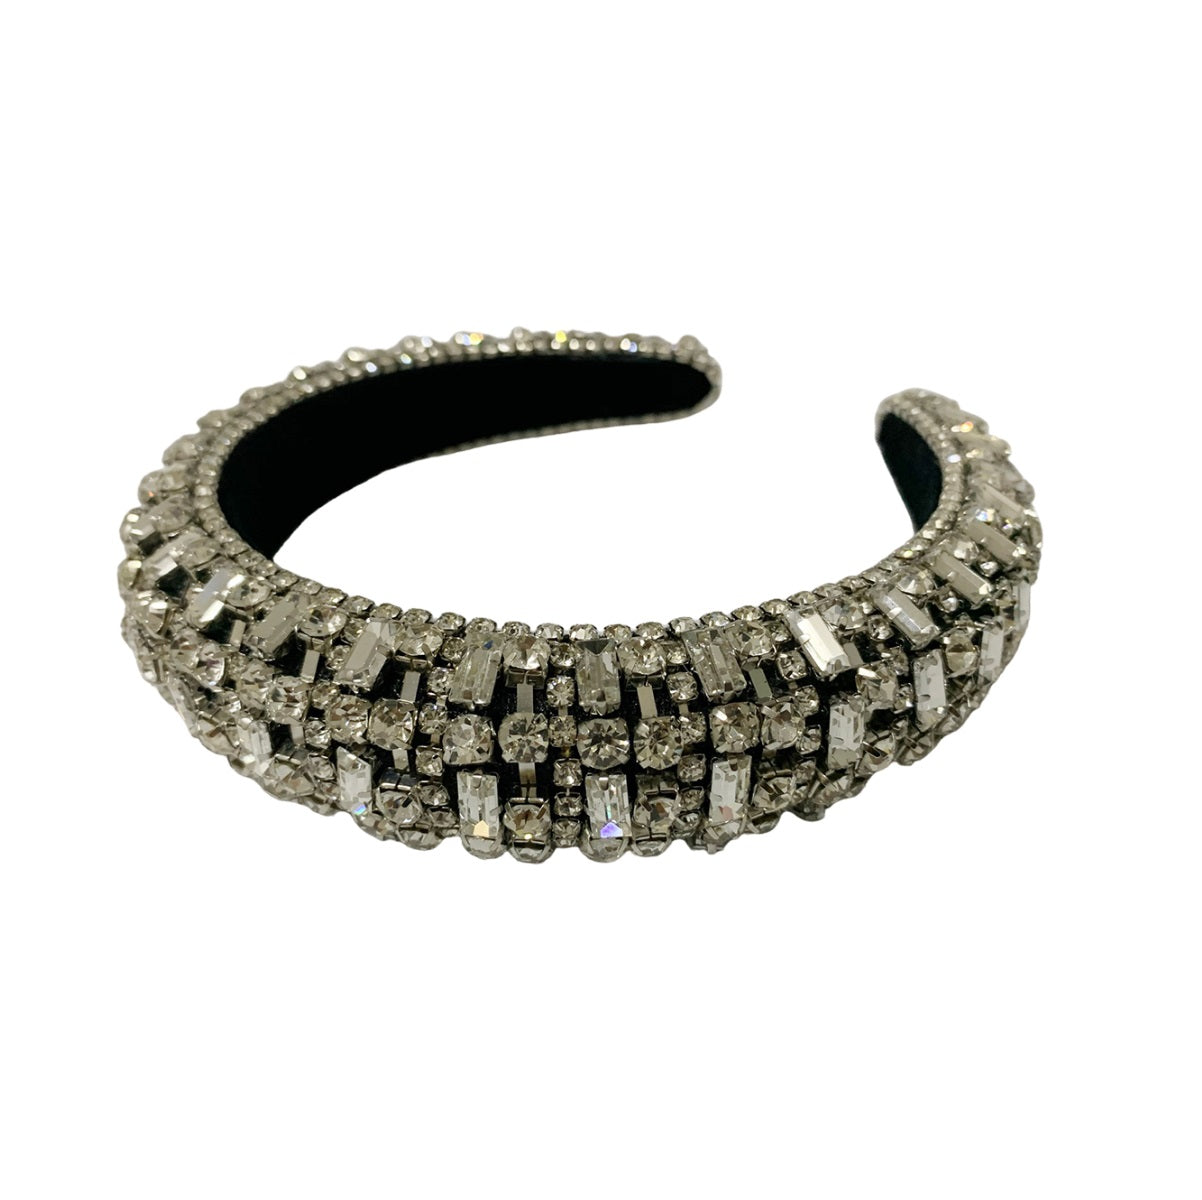 Mia Beauty Royal Elevated Headband in silver metal and clear stones